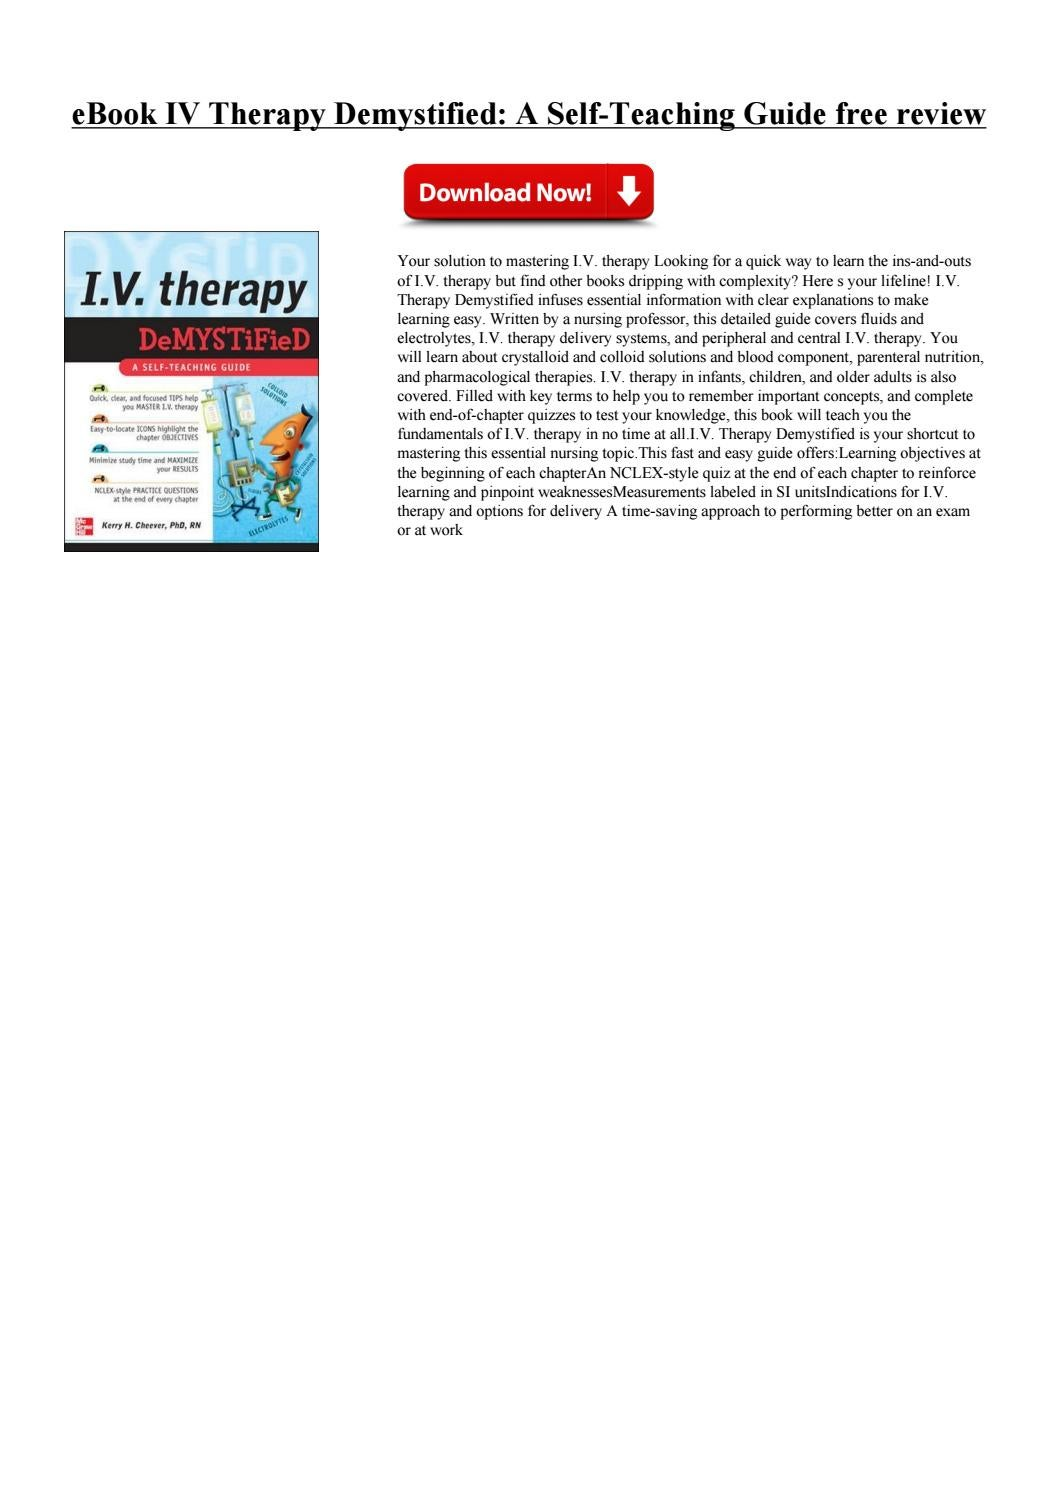 IV Therapy Demystified - A Self-Teaching Guide